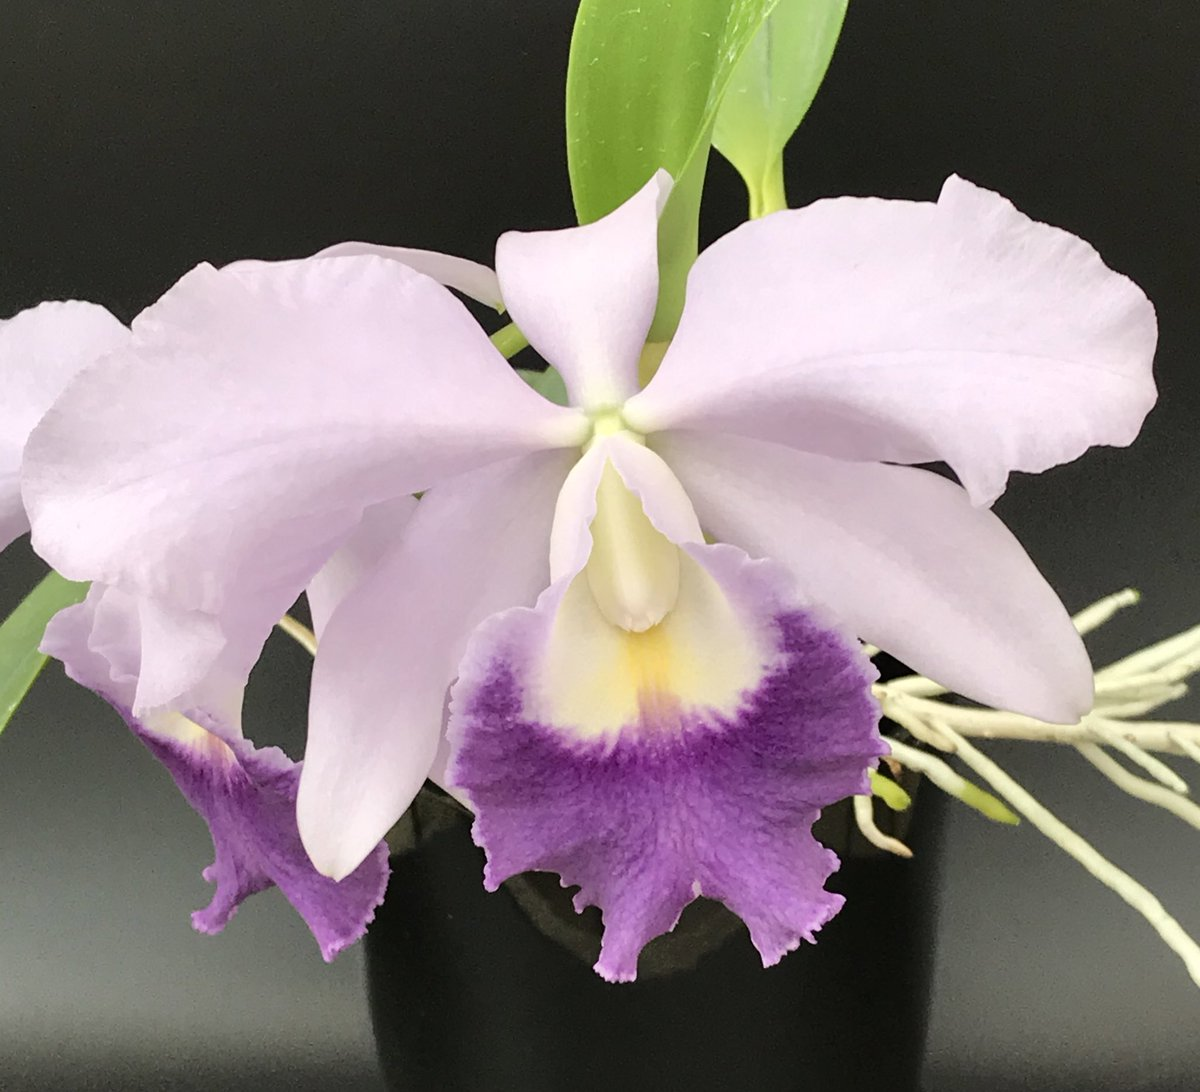 This Laeliocattleya Mini Purple x Cattleya labiata 'Blue x Blue' reminds us of a dog with her ears back!  The blooms are huge and sweetly fragrant. #orchids #flowers #asheville #apptropicals #wnc #orchid #houseplants #avl #orchidnursery #weship https://t.co/v0H4QXOH2S